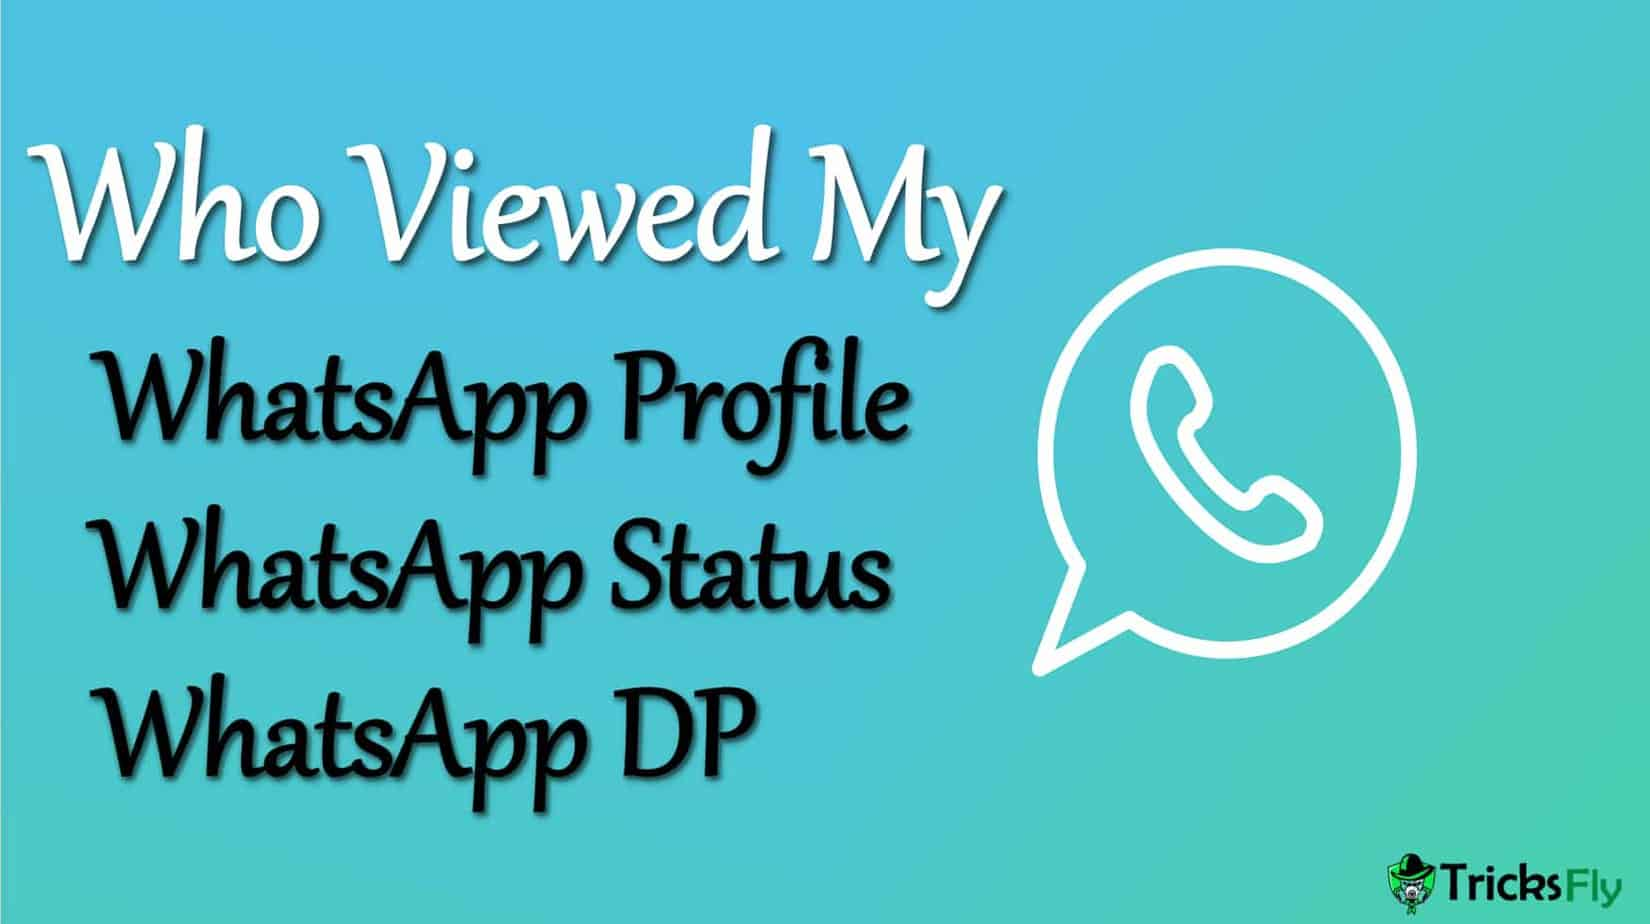 WHO VIEWED MY WHATSAPP PROFILE, STATUS, DP